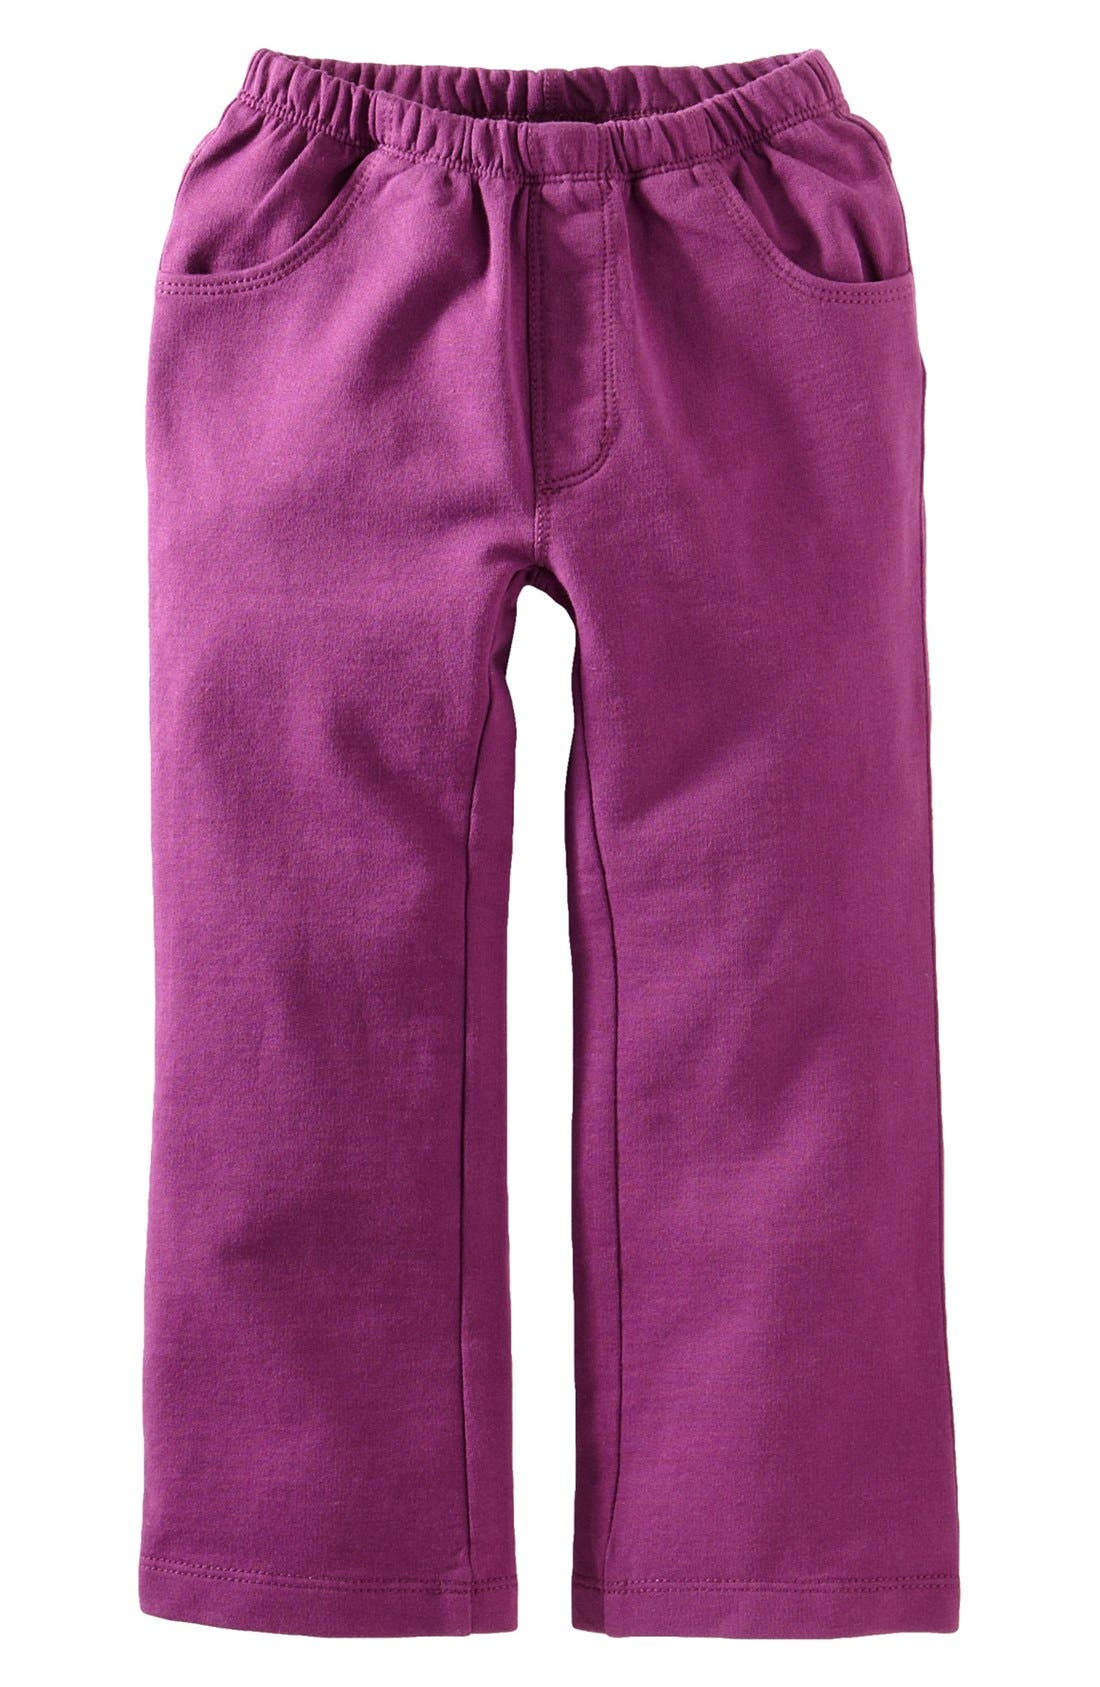 Main Image - Tea Collection Bootcut French Terry Pants (Little Girls & Big Girls)